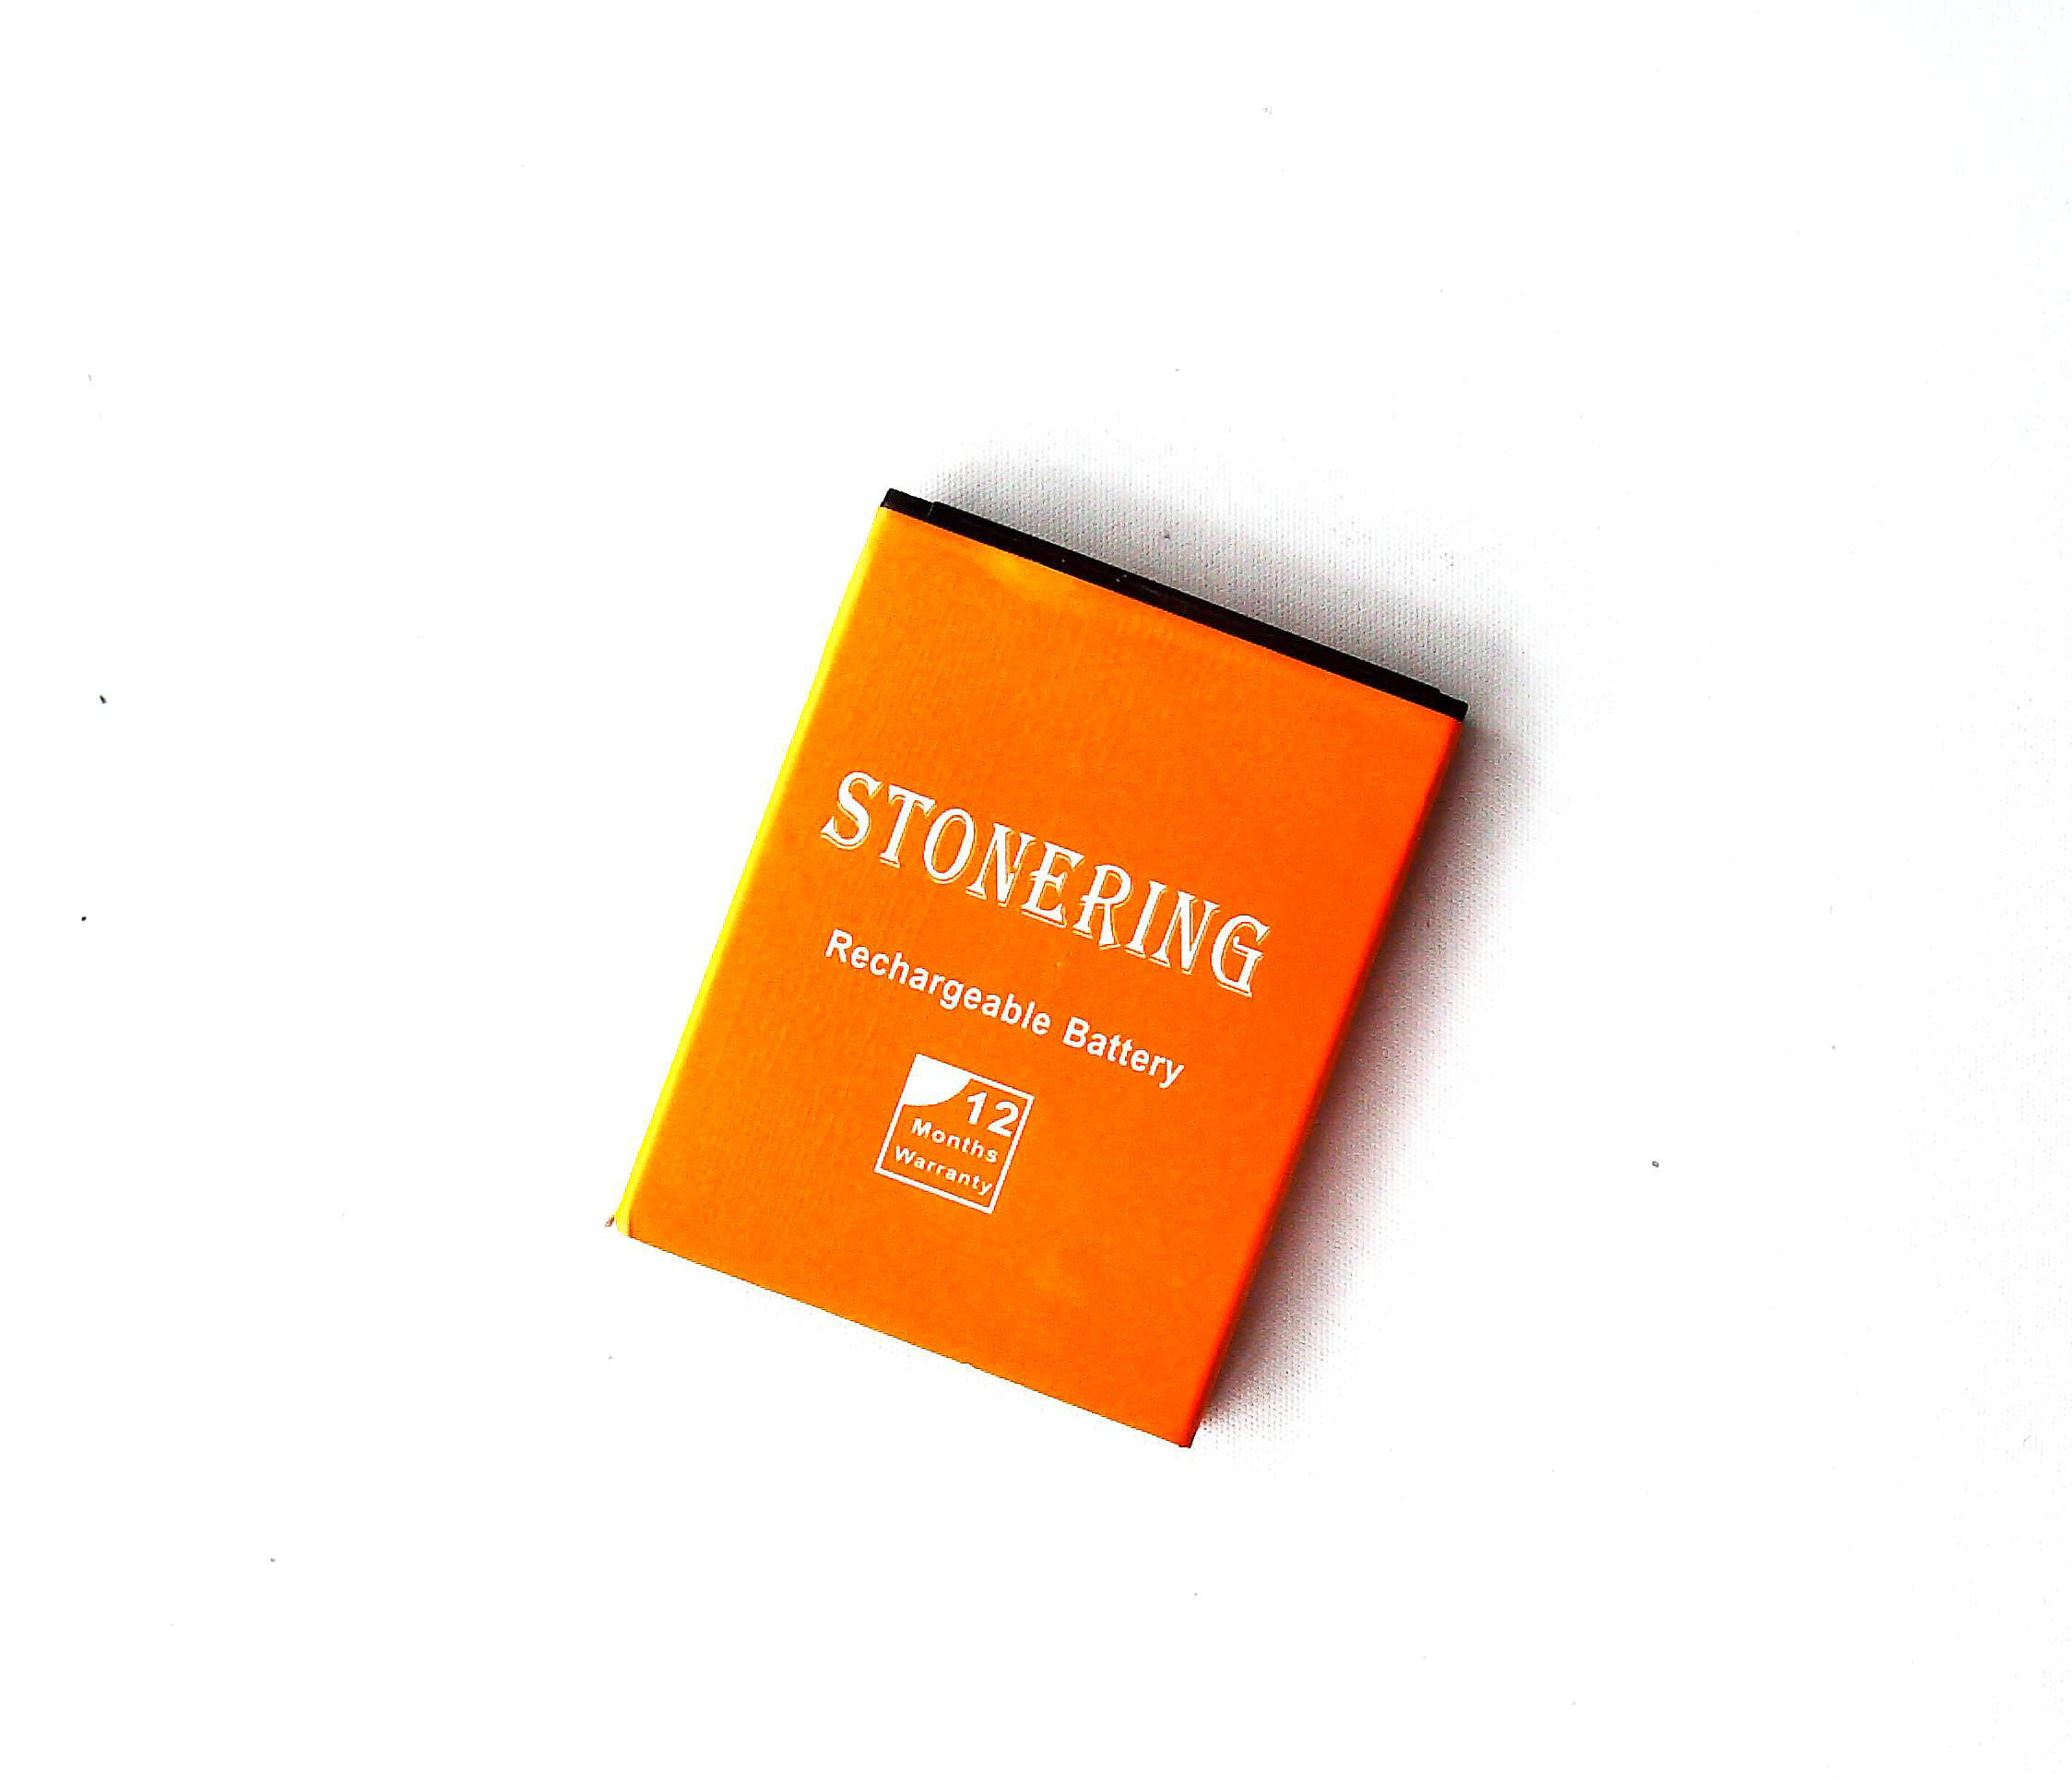 Stonering <font><b>Battery</b></font> 1800mah Li3716T42P3h594650 for <font><b>ZTE</b></font> U970 V930 U930 N970 <font><b>V970</b></font> V889M U795 <font><b>ZTE</b></font> Warp Sequent, Grand X phone image